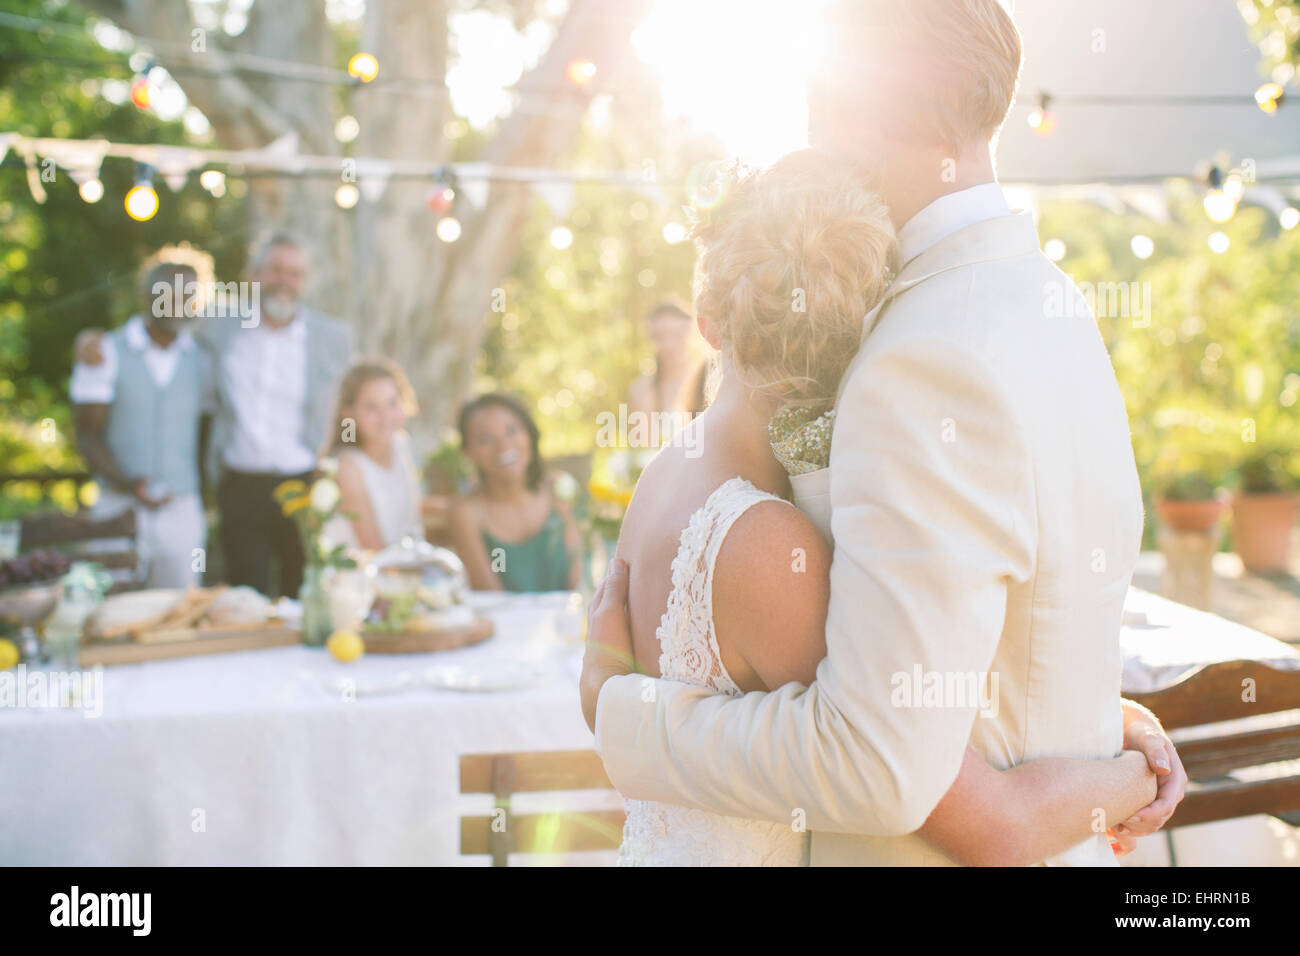 Young couple embracing in garden during wedding reception - Stock Image